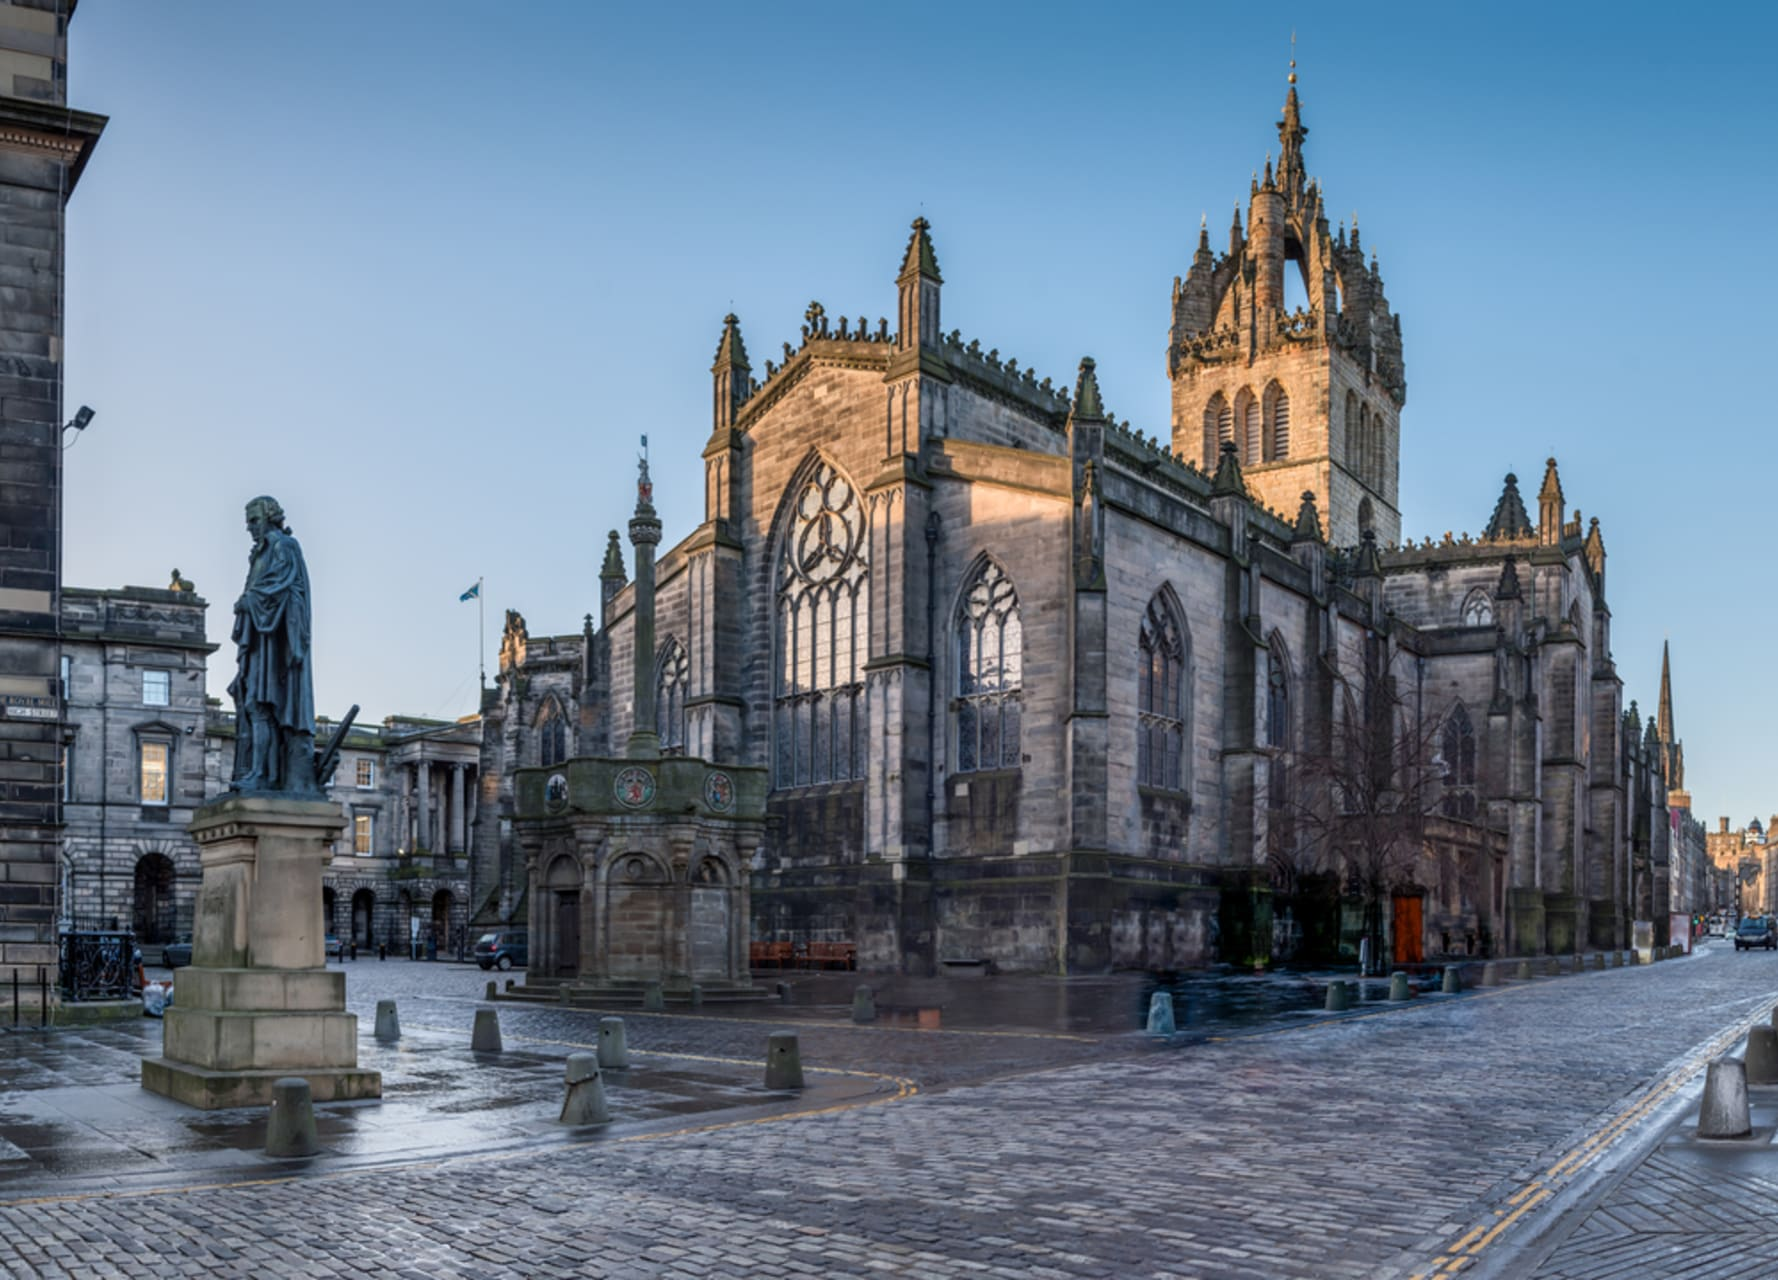 Edinburgh - The Royal Mile: St Giles Cathedral to the Netherbow Port